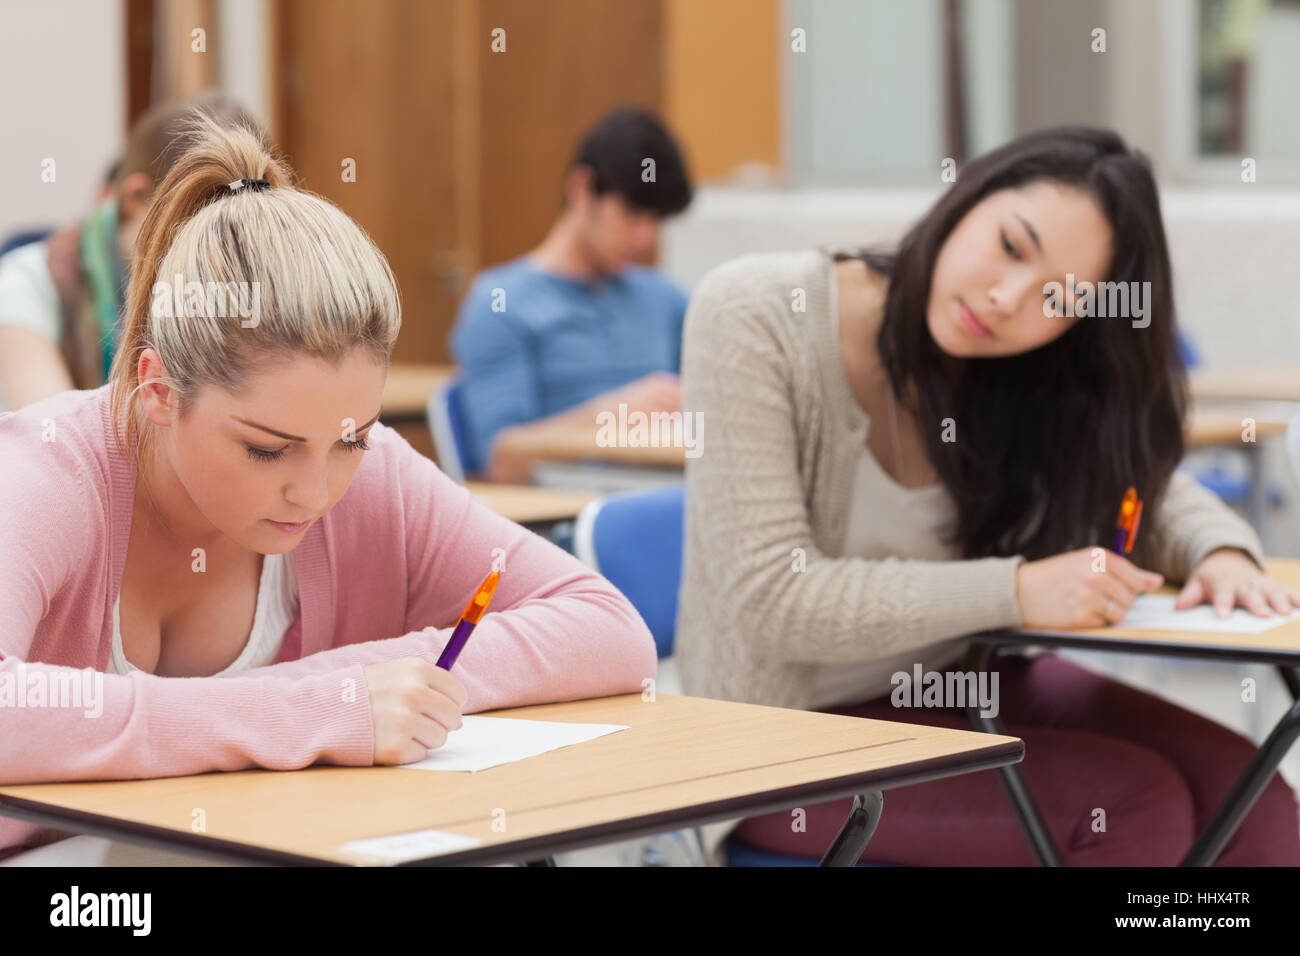 Burnette is trying to copy blonde student in exam in exam hall in college - Stock Image